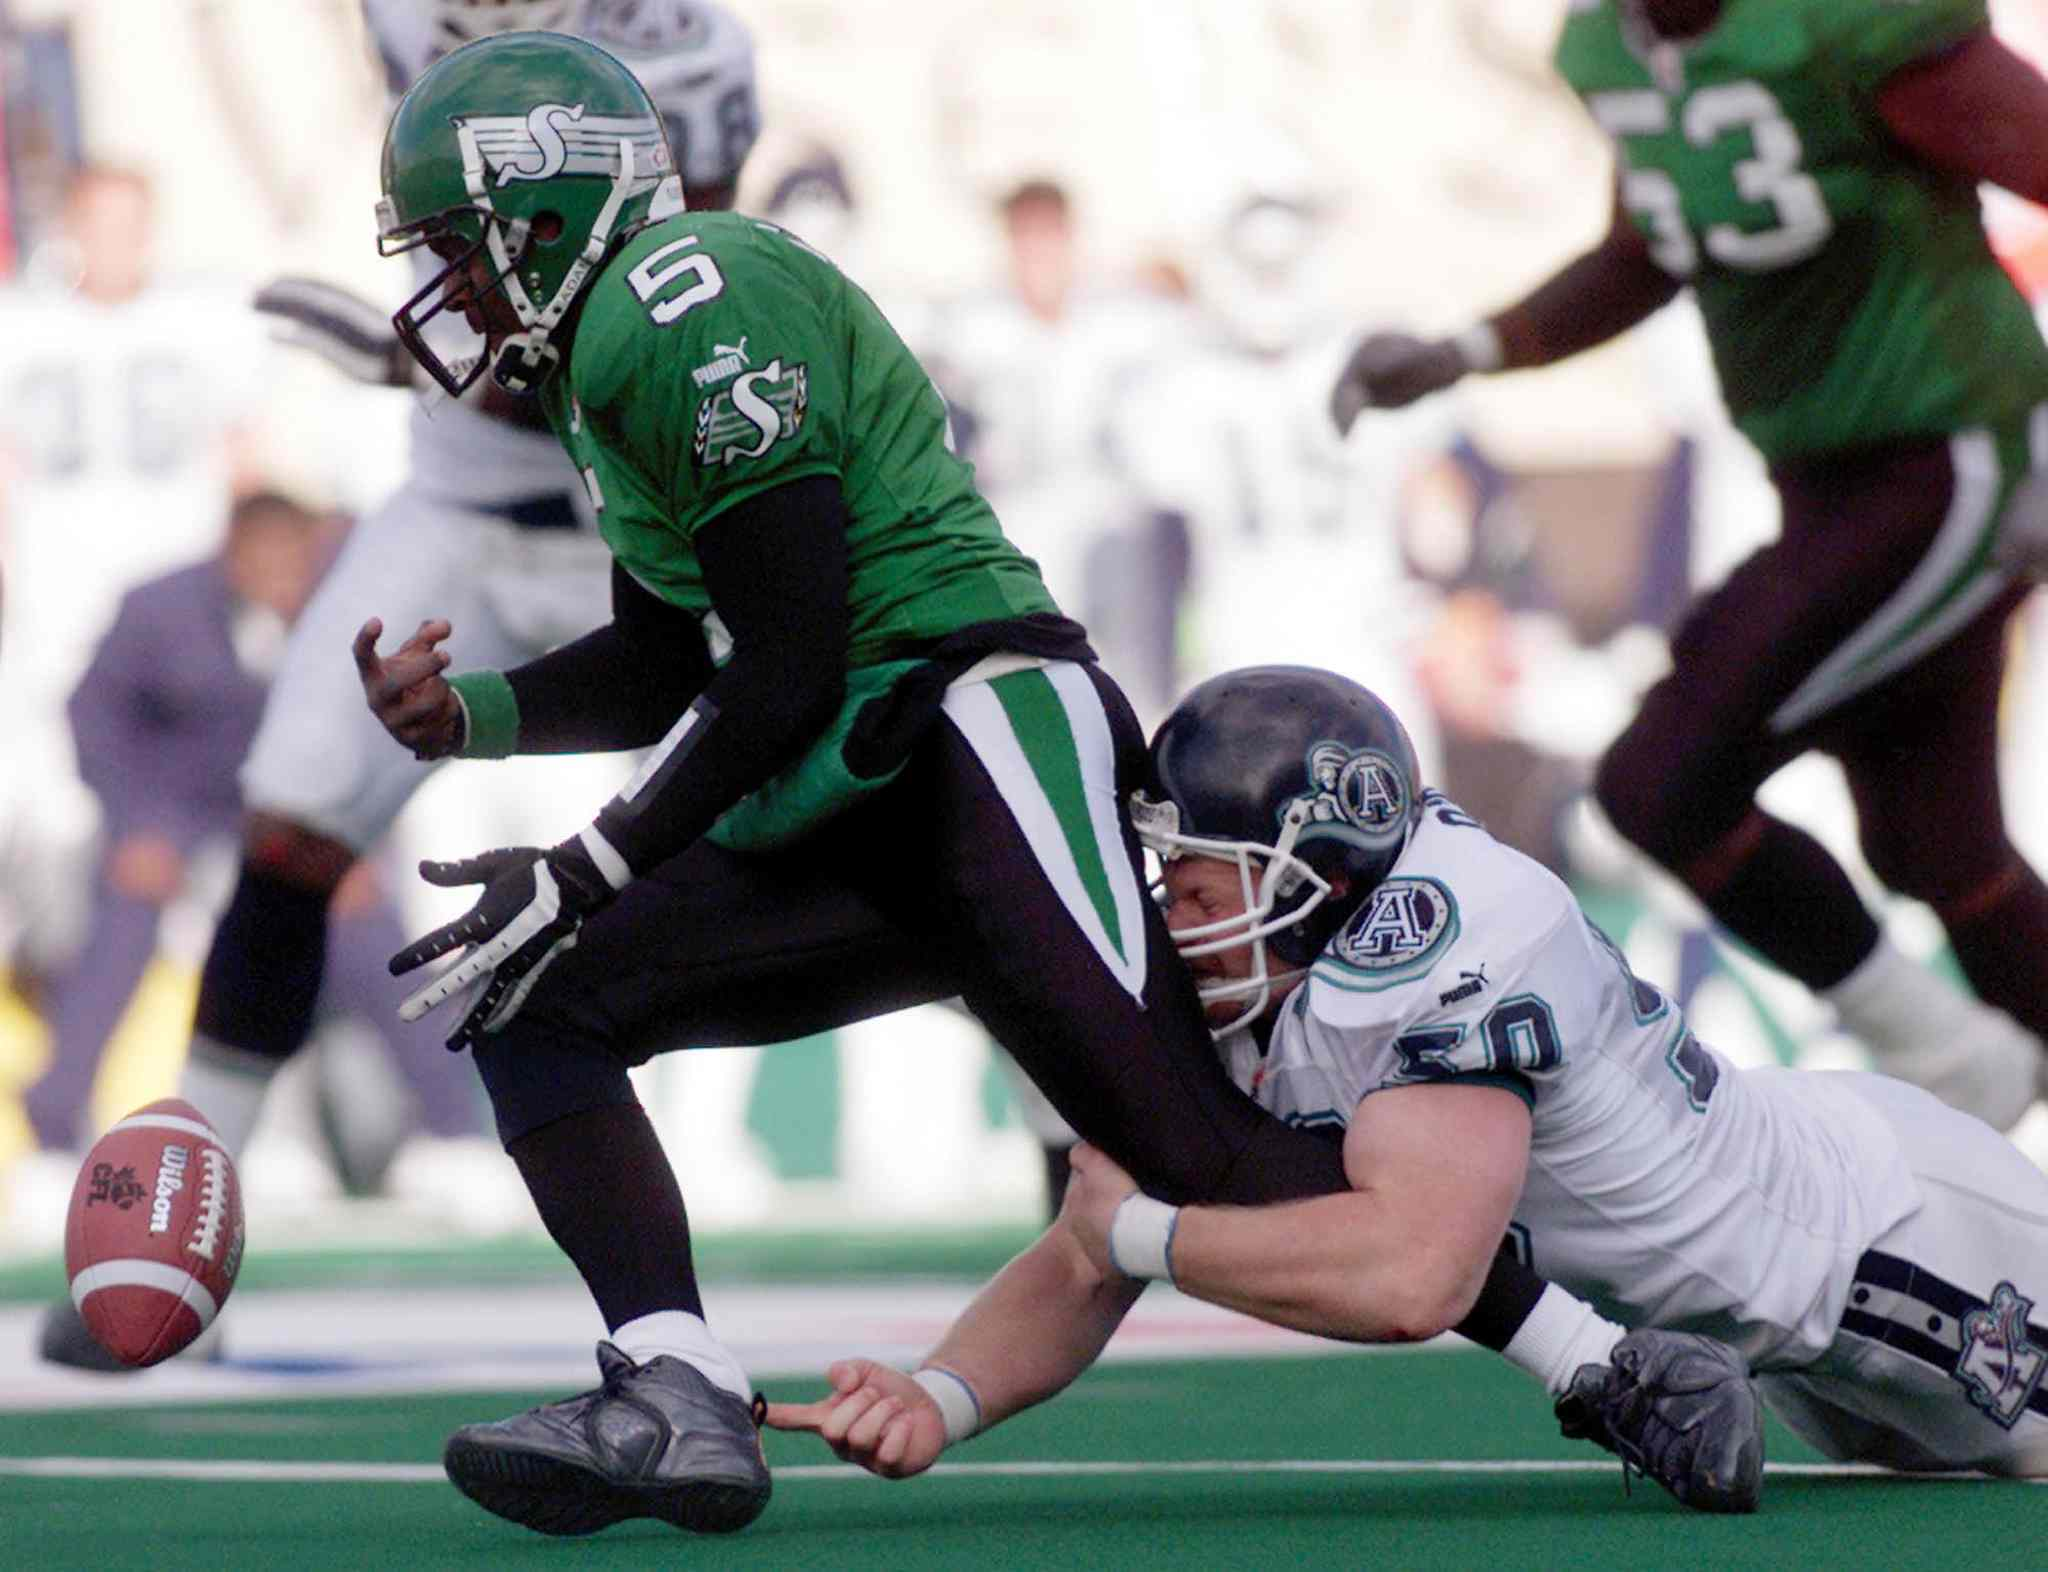 Saskatchewan Roughriders quarterback Kevin Glenn Fumbles the ball during tackle by Toronto Argonaut Mike O'Shea in Regina in 2003. (Geoff Howe / The Canadian Press files)